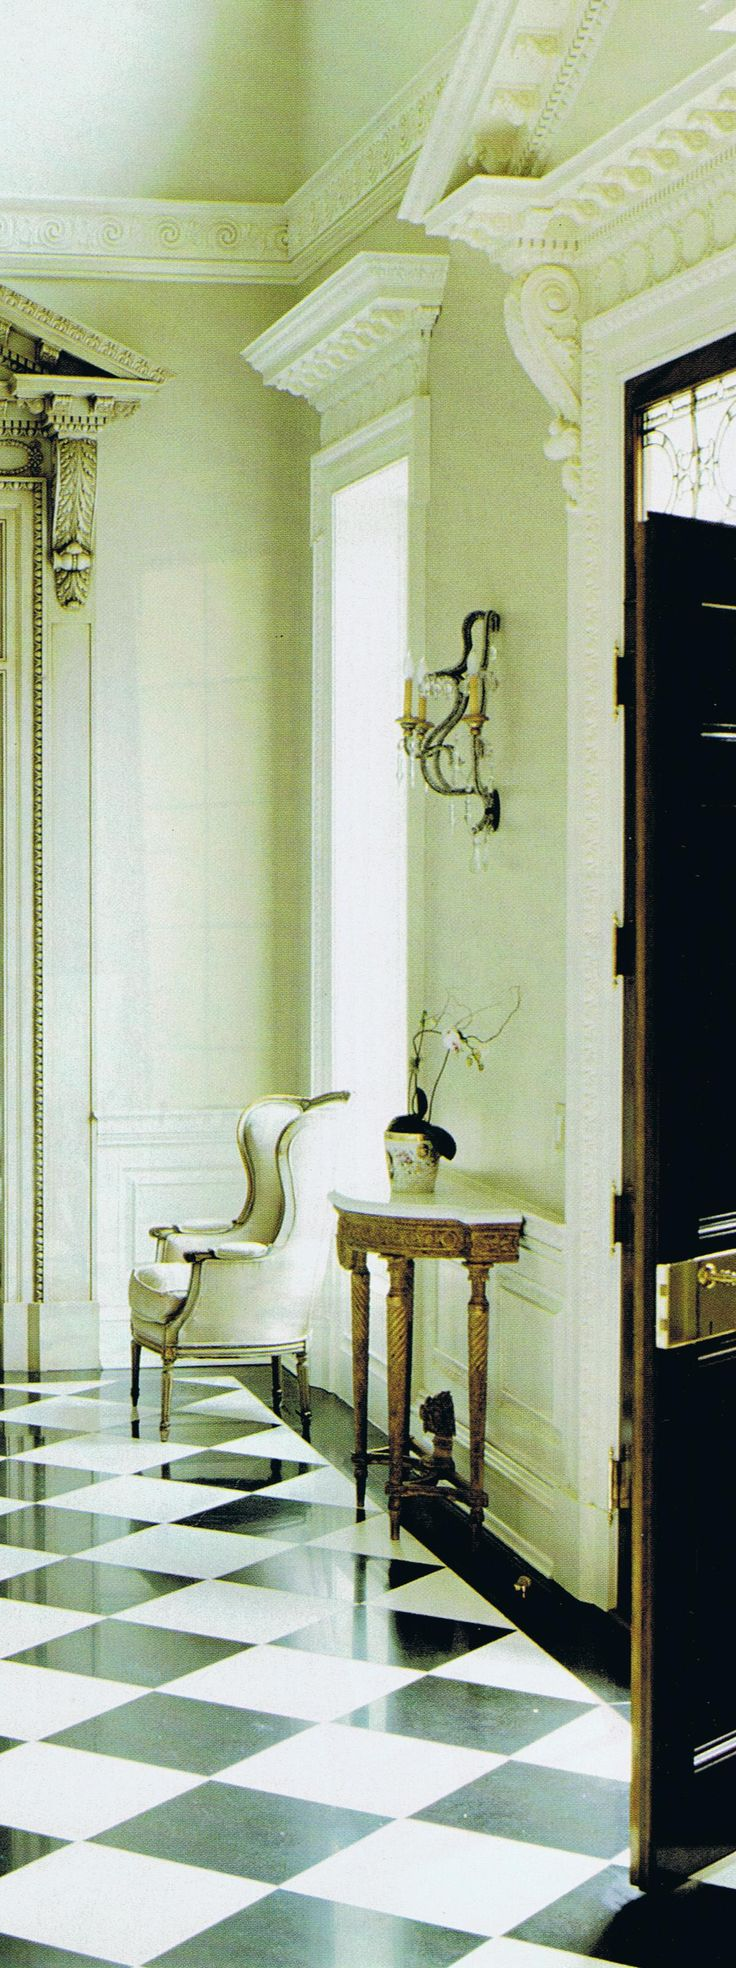 Home decorators collection revisited southern hospitality - Suzanne Kasler Southern Accents March 05 House Beautiful Nov 06